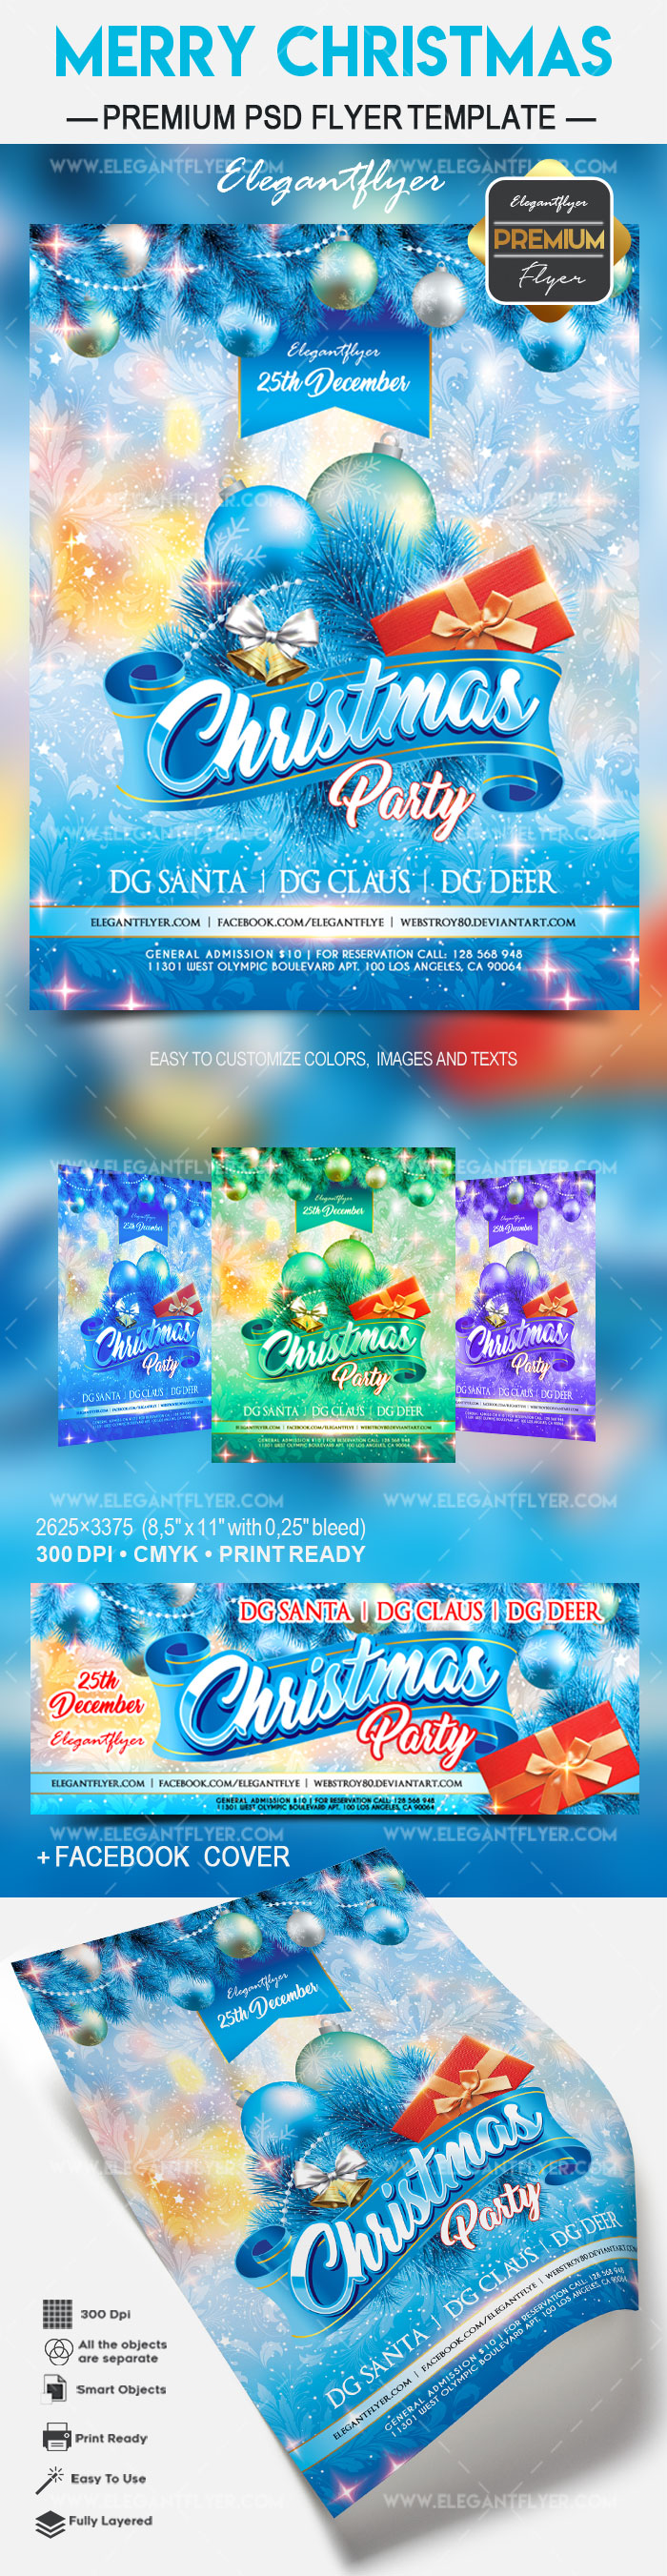 Merry Christmas PSD Poster Template